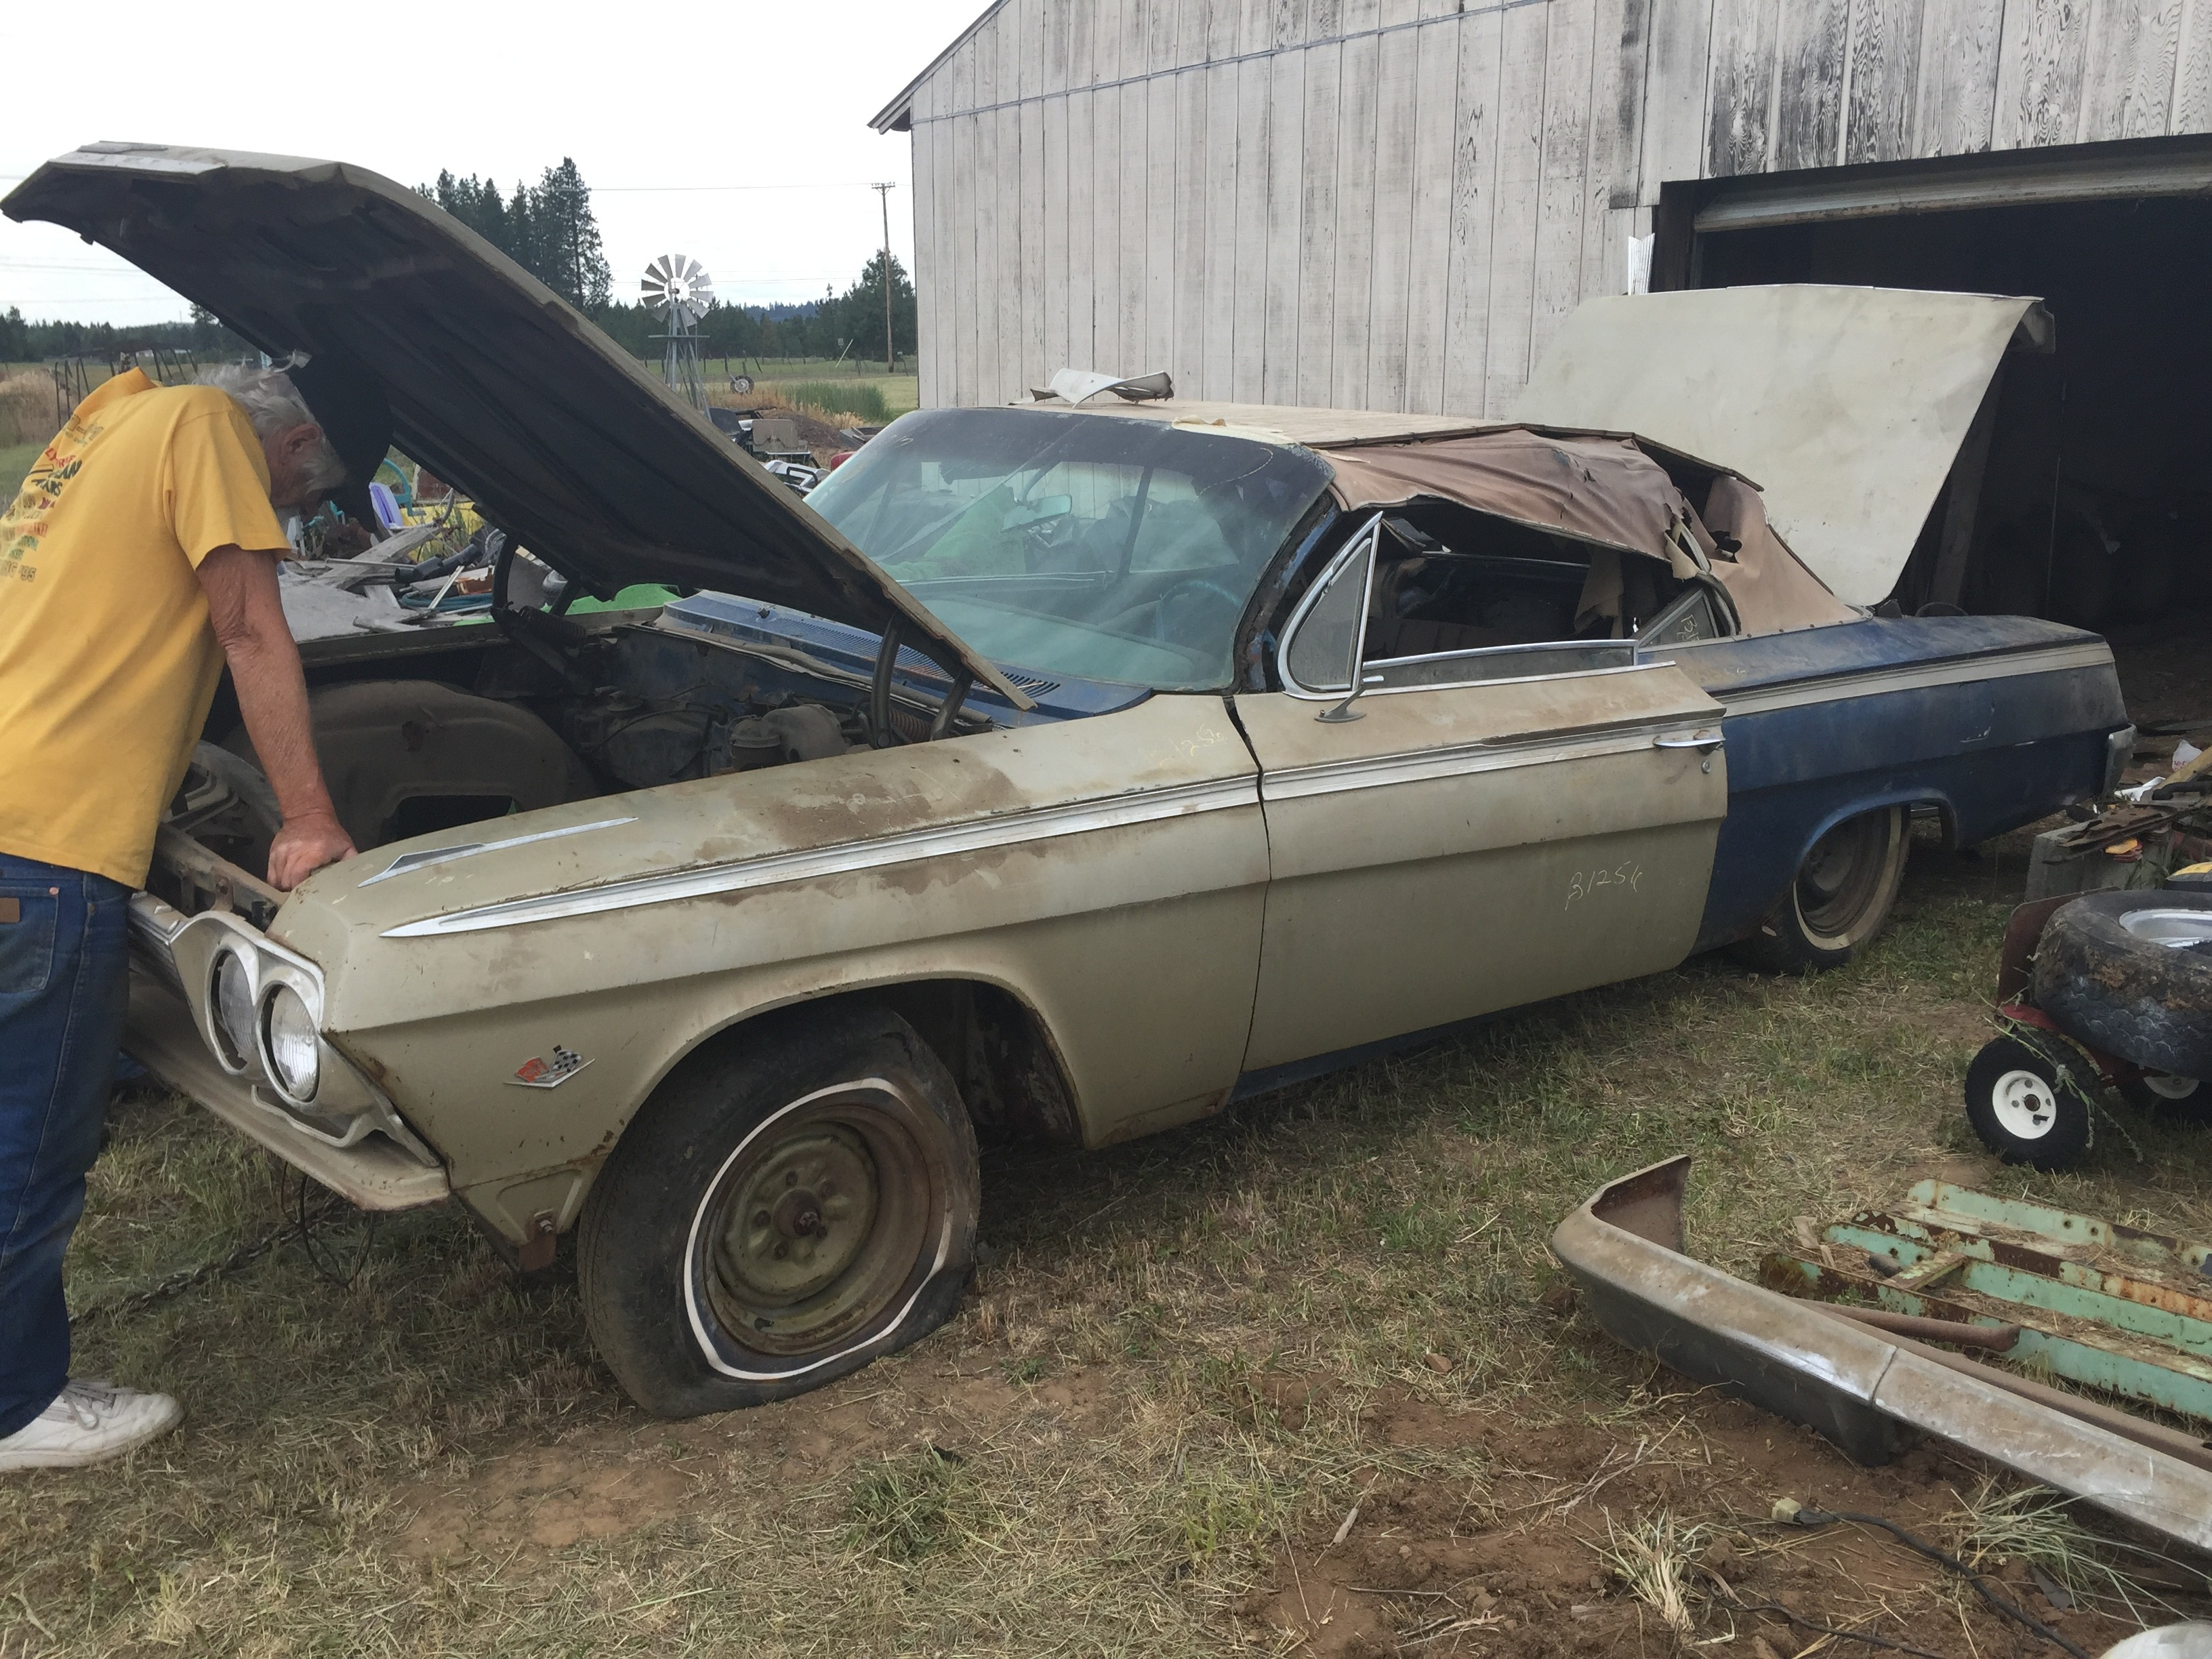 Barn Find Impala SS Heading Home For a Full Restoration